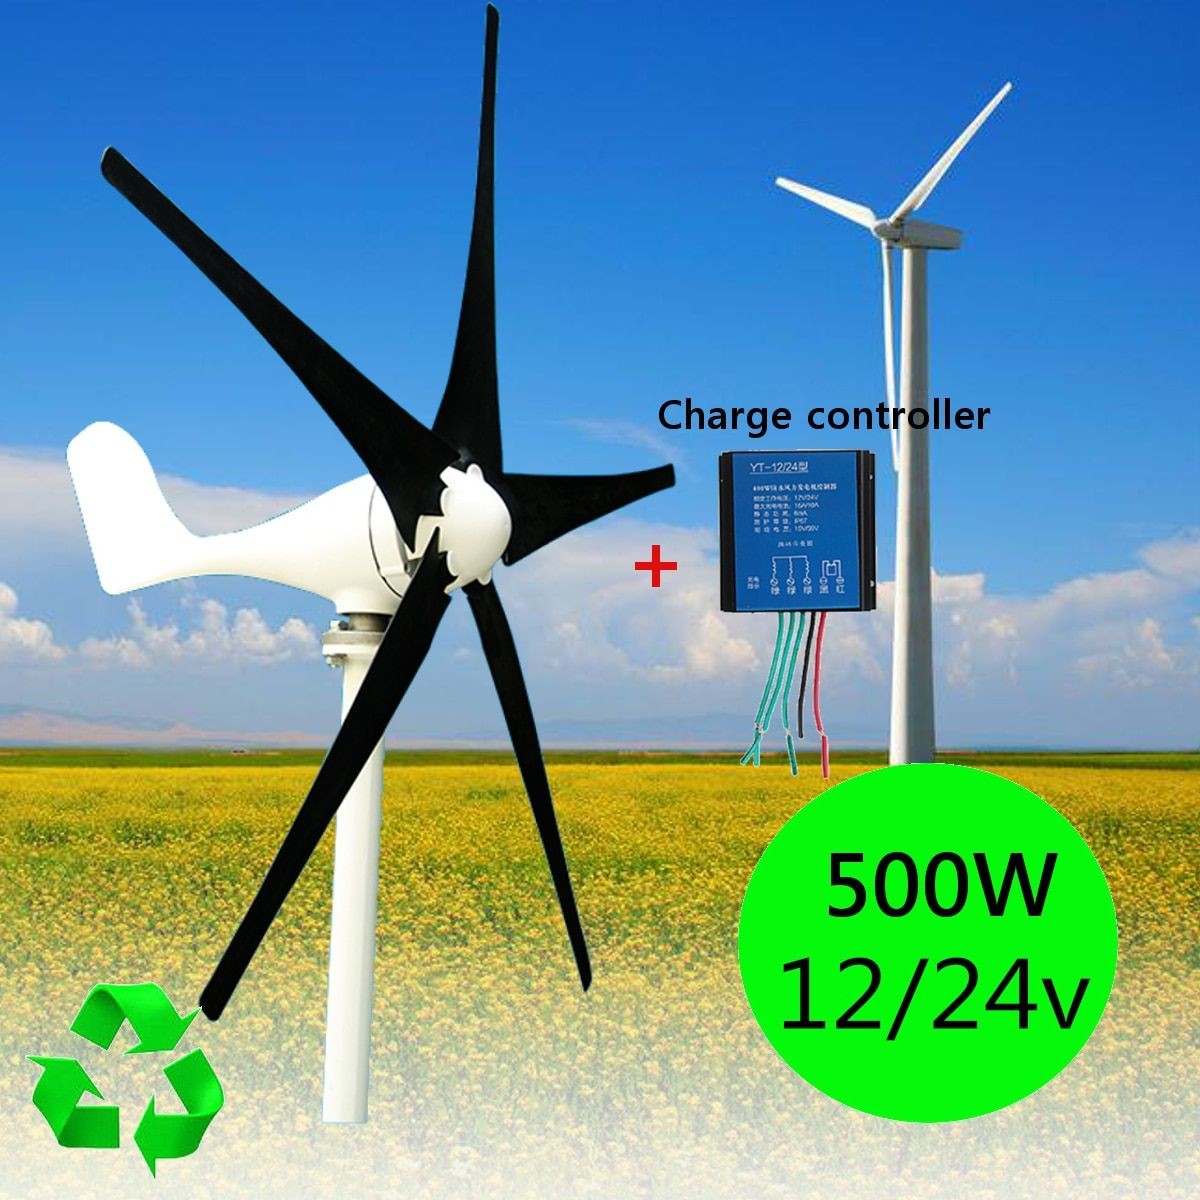 500W Max 600W Wind Turbine Generator DC 12V 24V with 5 Blade Windmill + Charge Controller